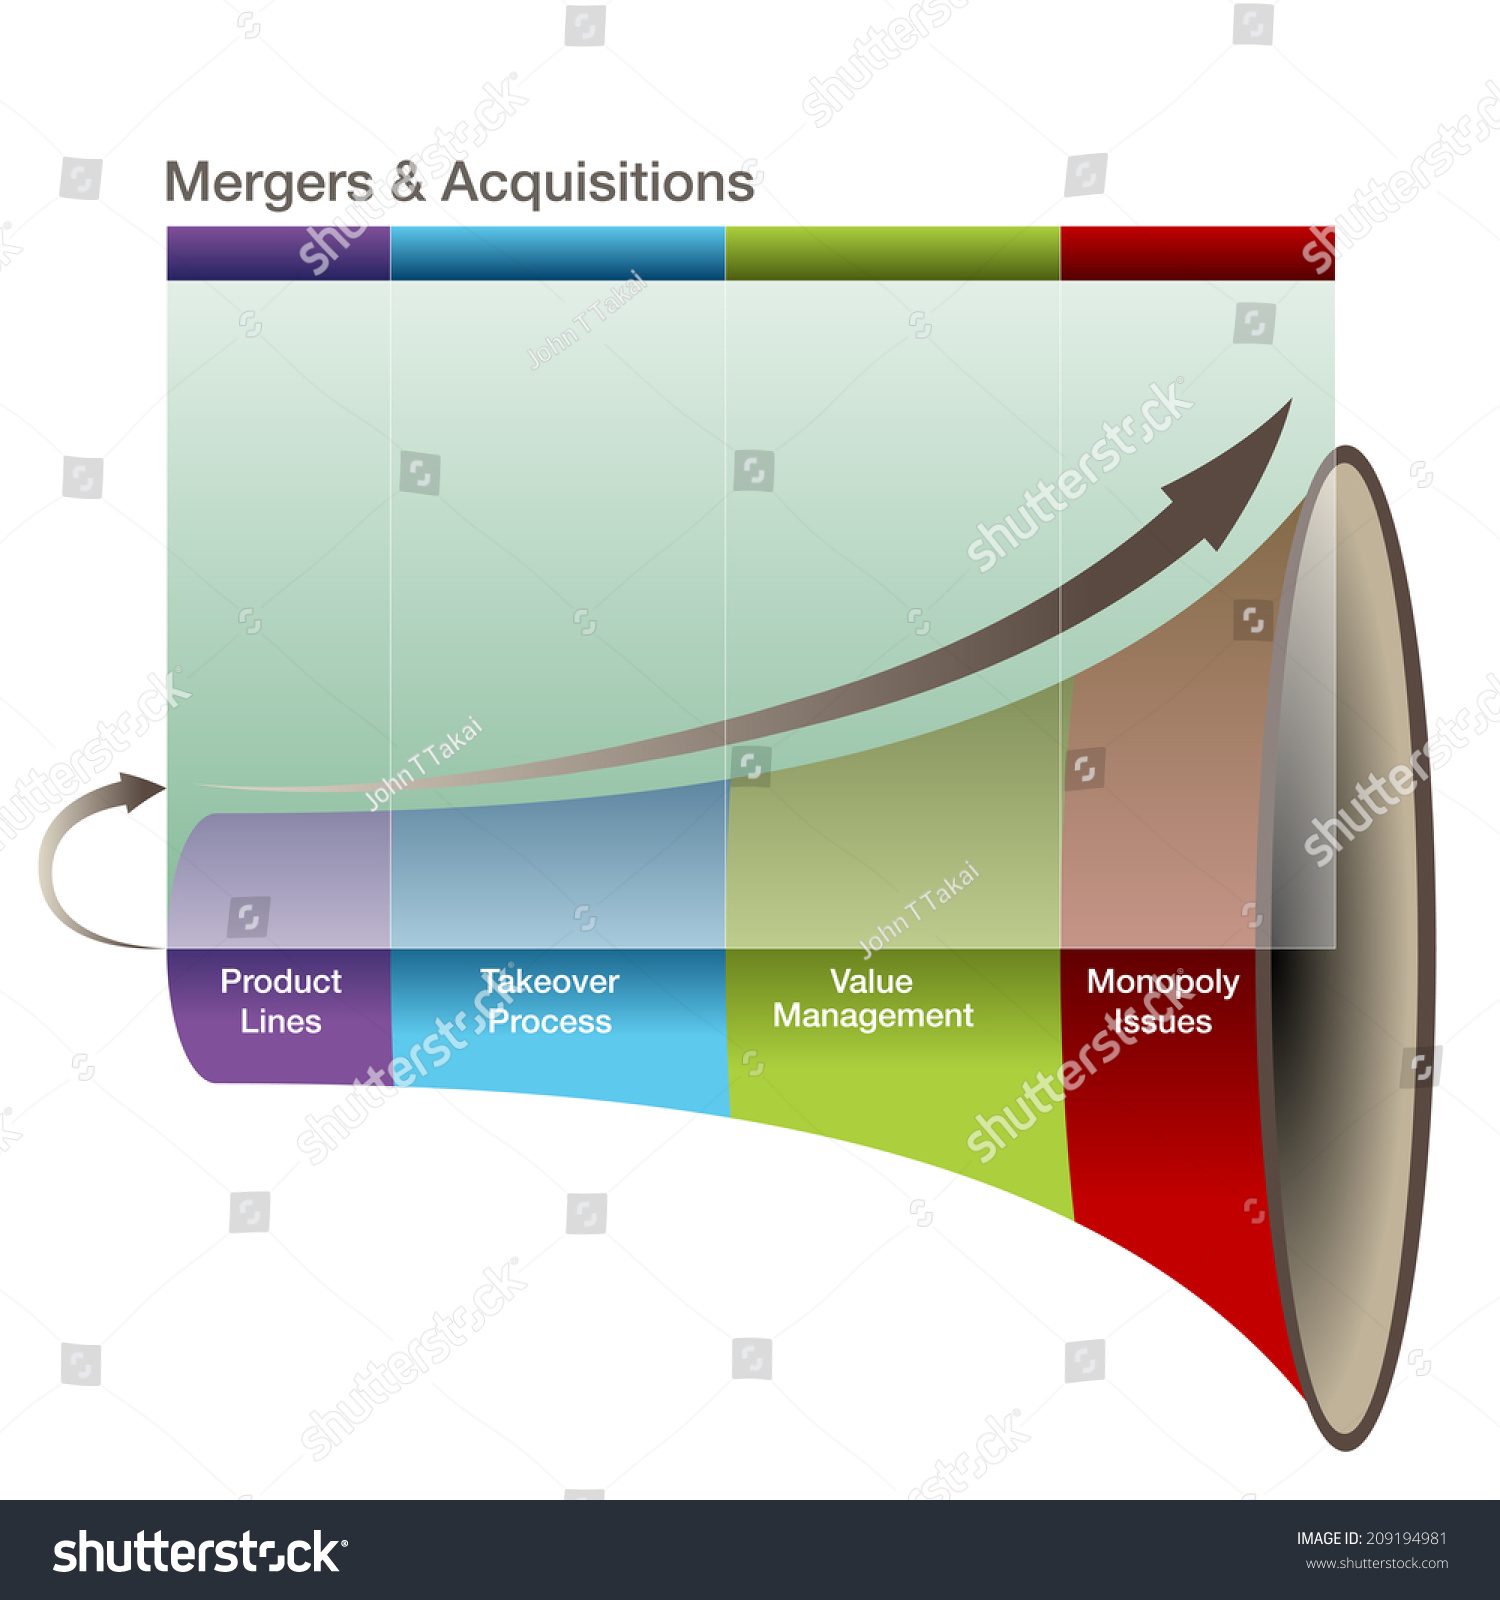 merger and aquisitions Business acquisition and merger associates (bama) provides both buy-side and sell-side services for lower-middle market companies.